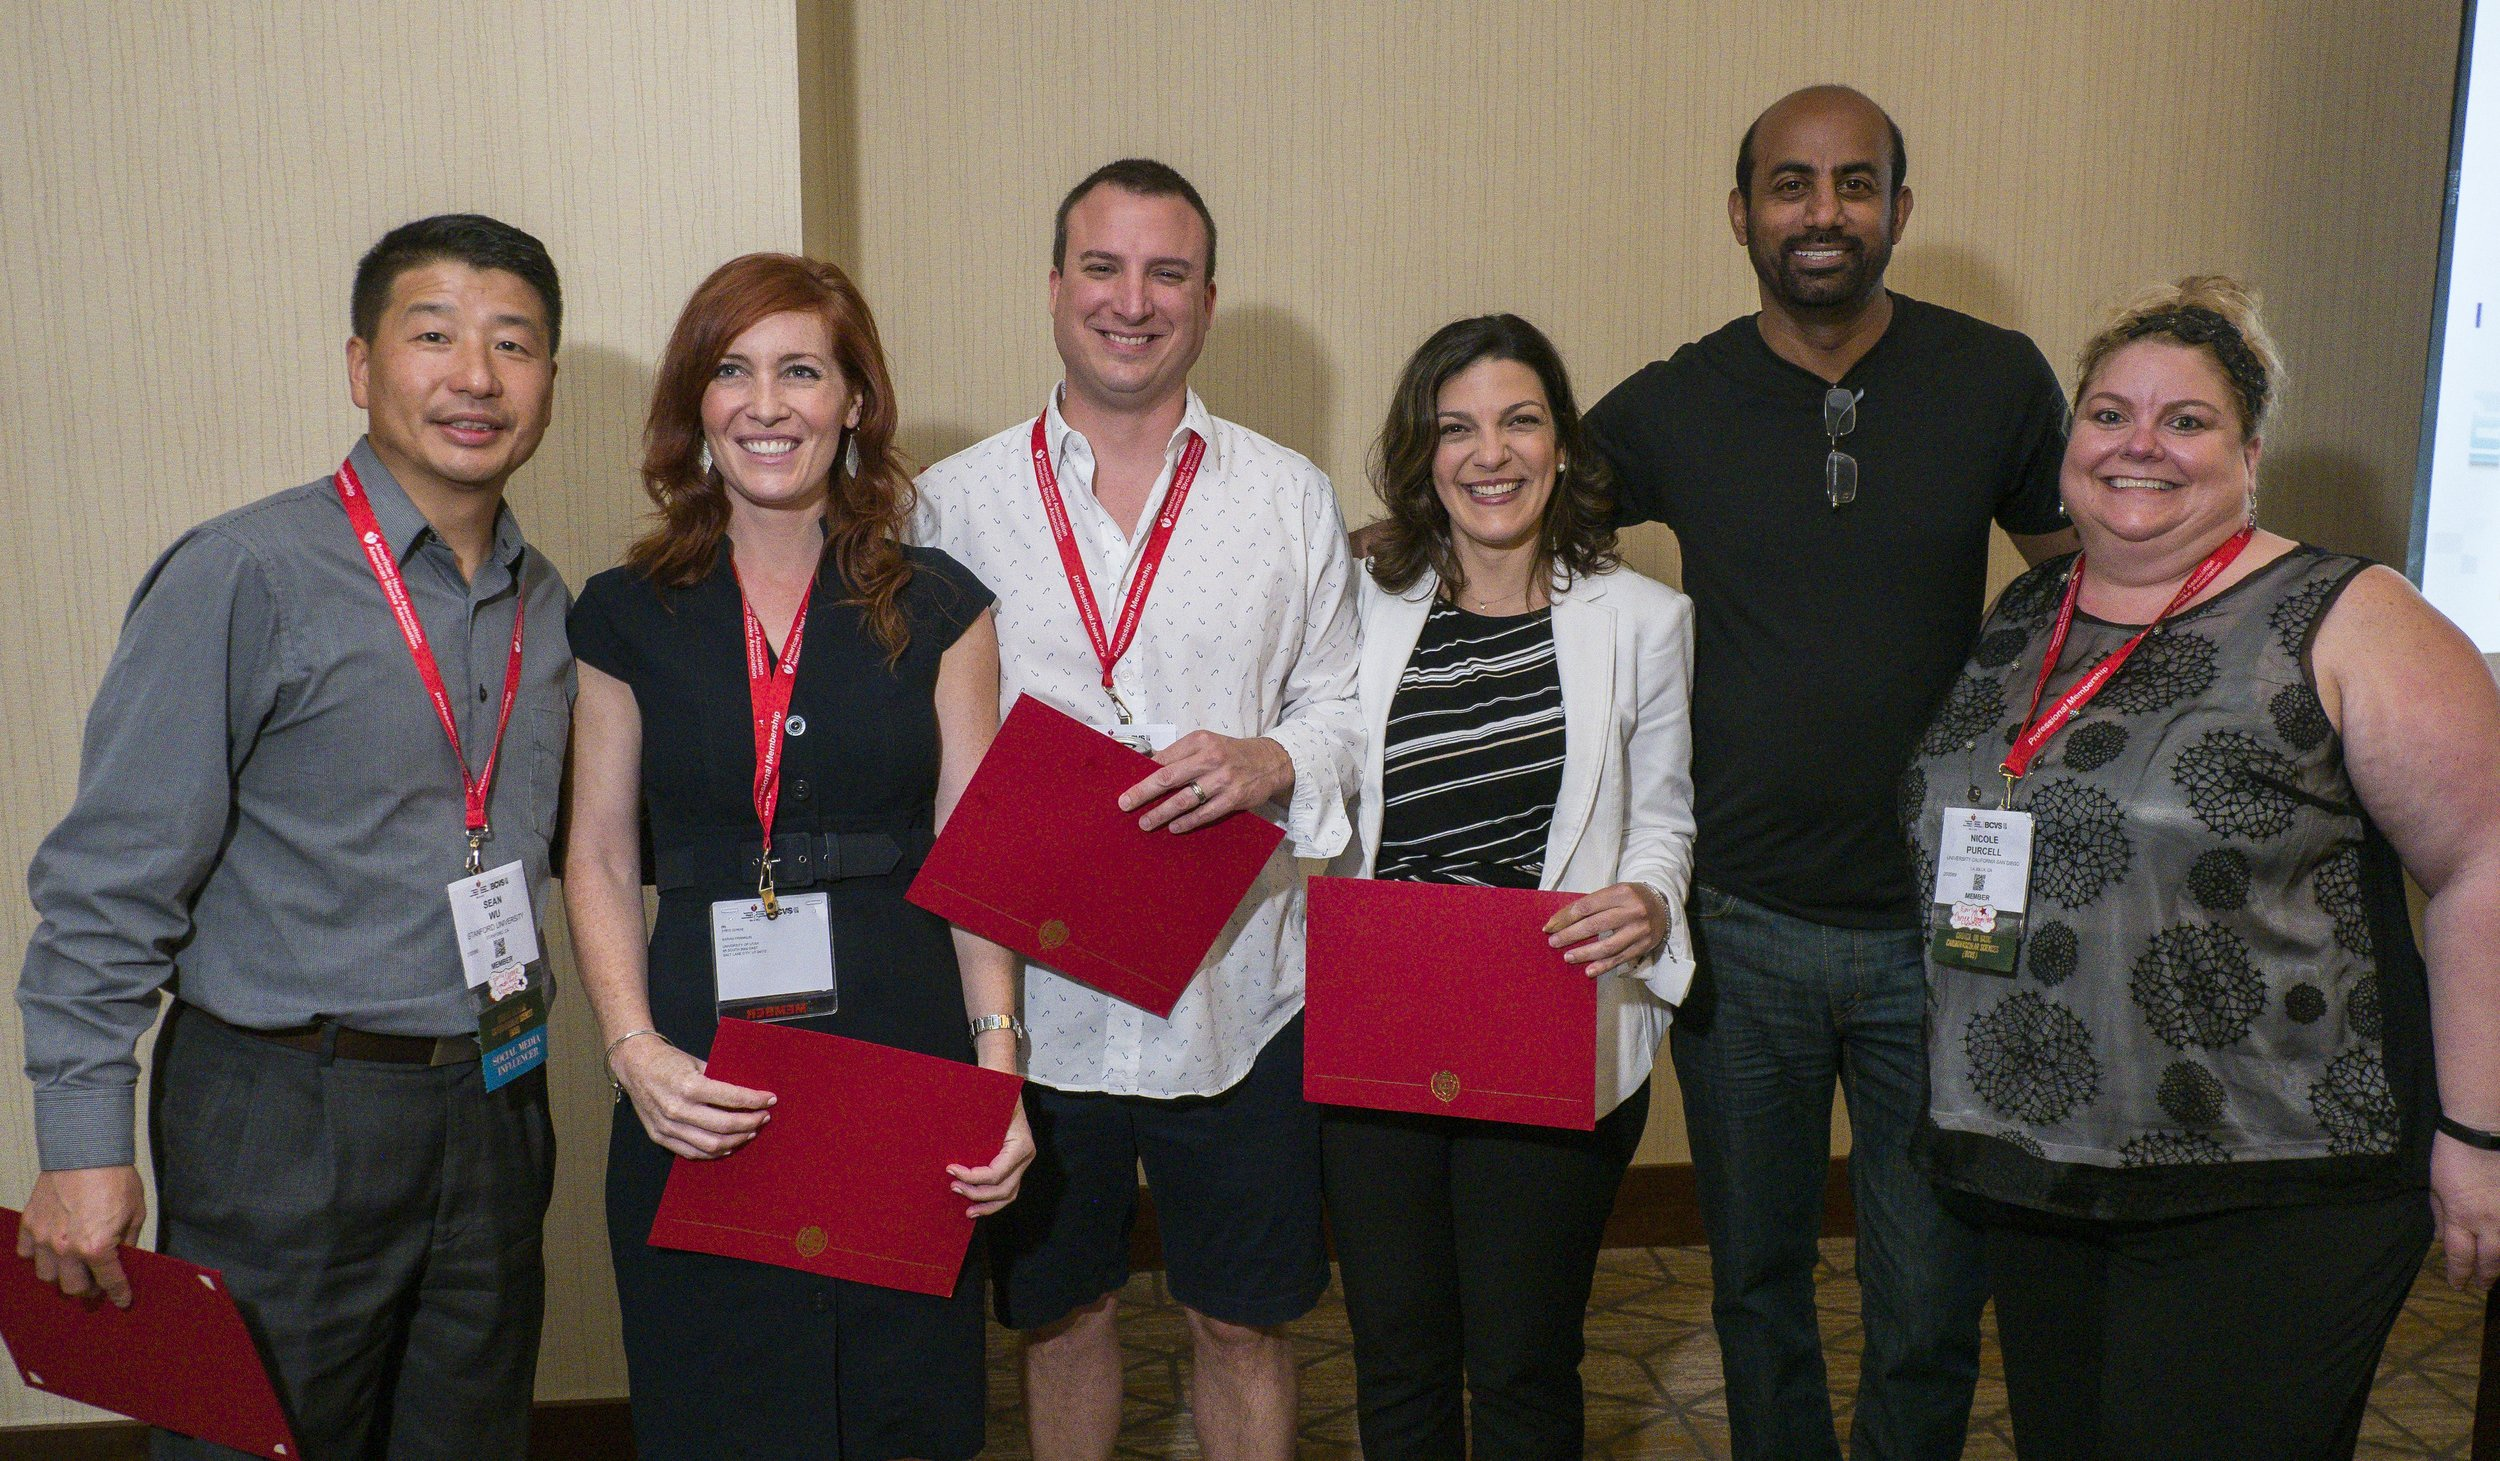 Dr. Elrod was recognized for his service on the AHA Early Career Committee.